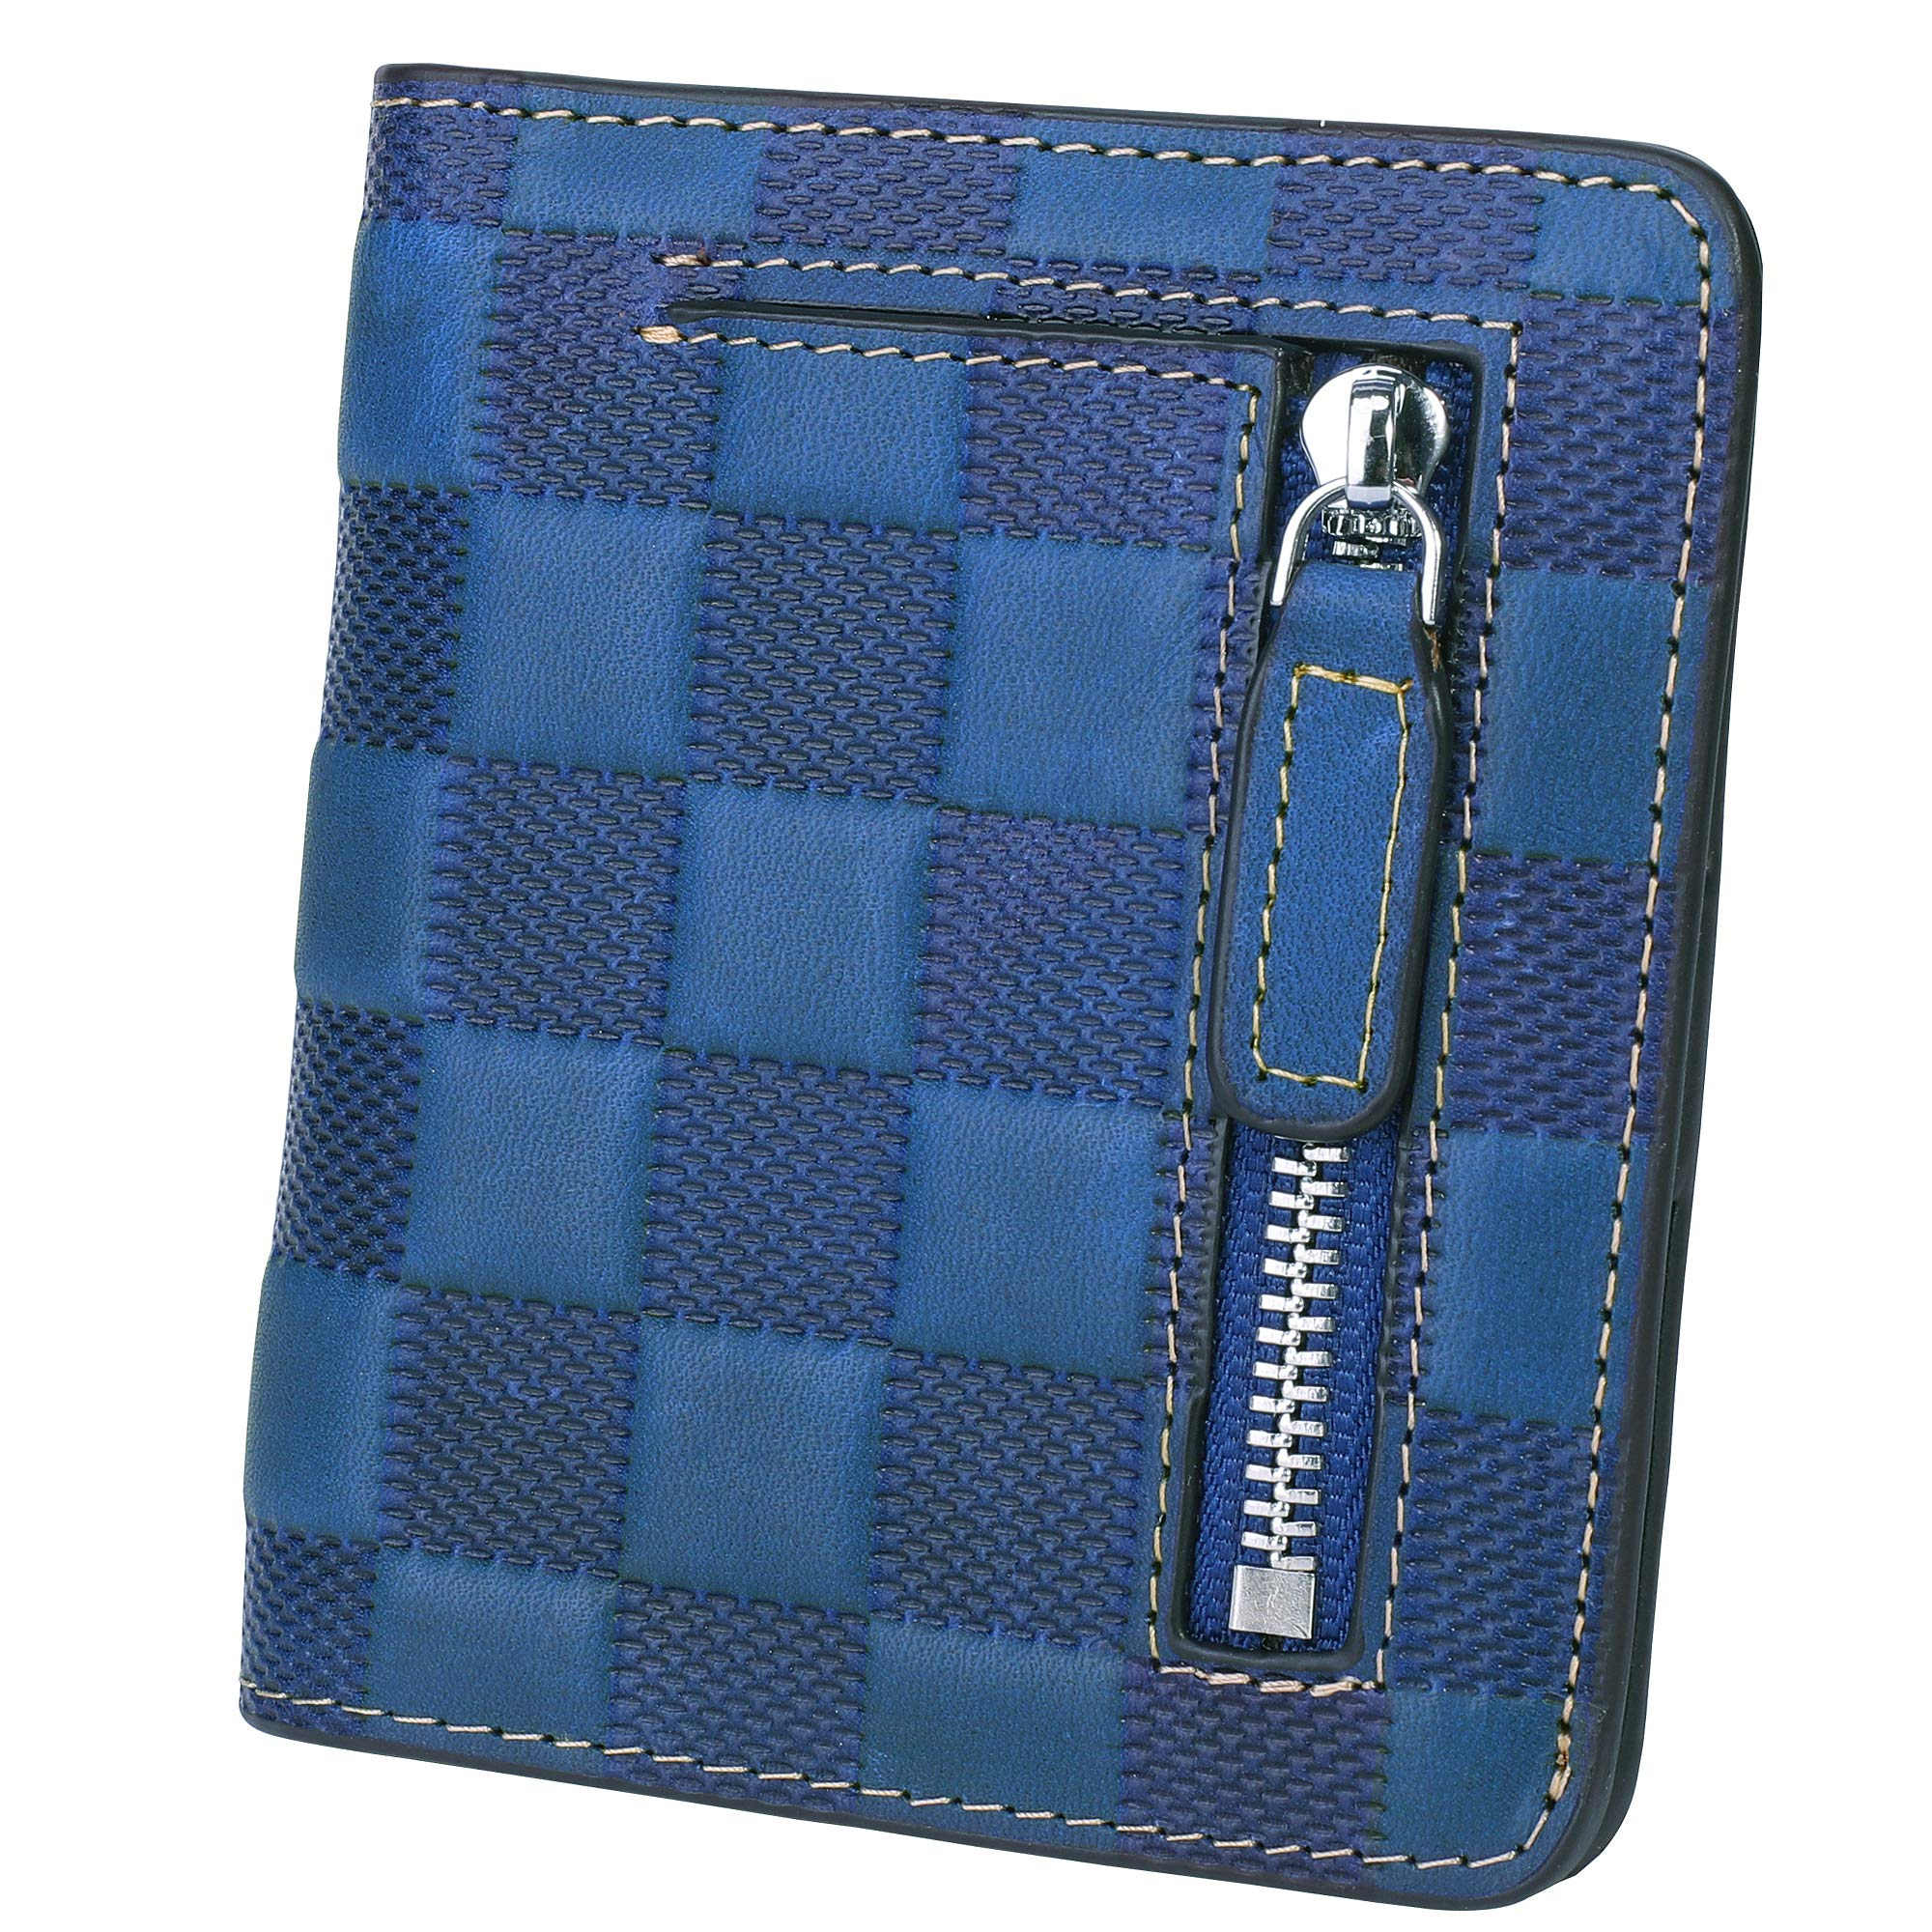 BIG SALE-AINIMOER Women's RFID Blocking Leather Small Compact Bifold Pocket Wallet Ladies Mini Purse with id Window (Checkered Blue)